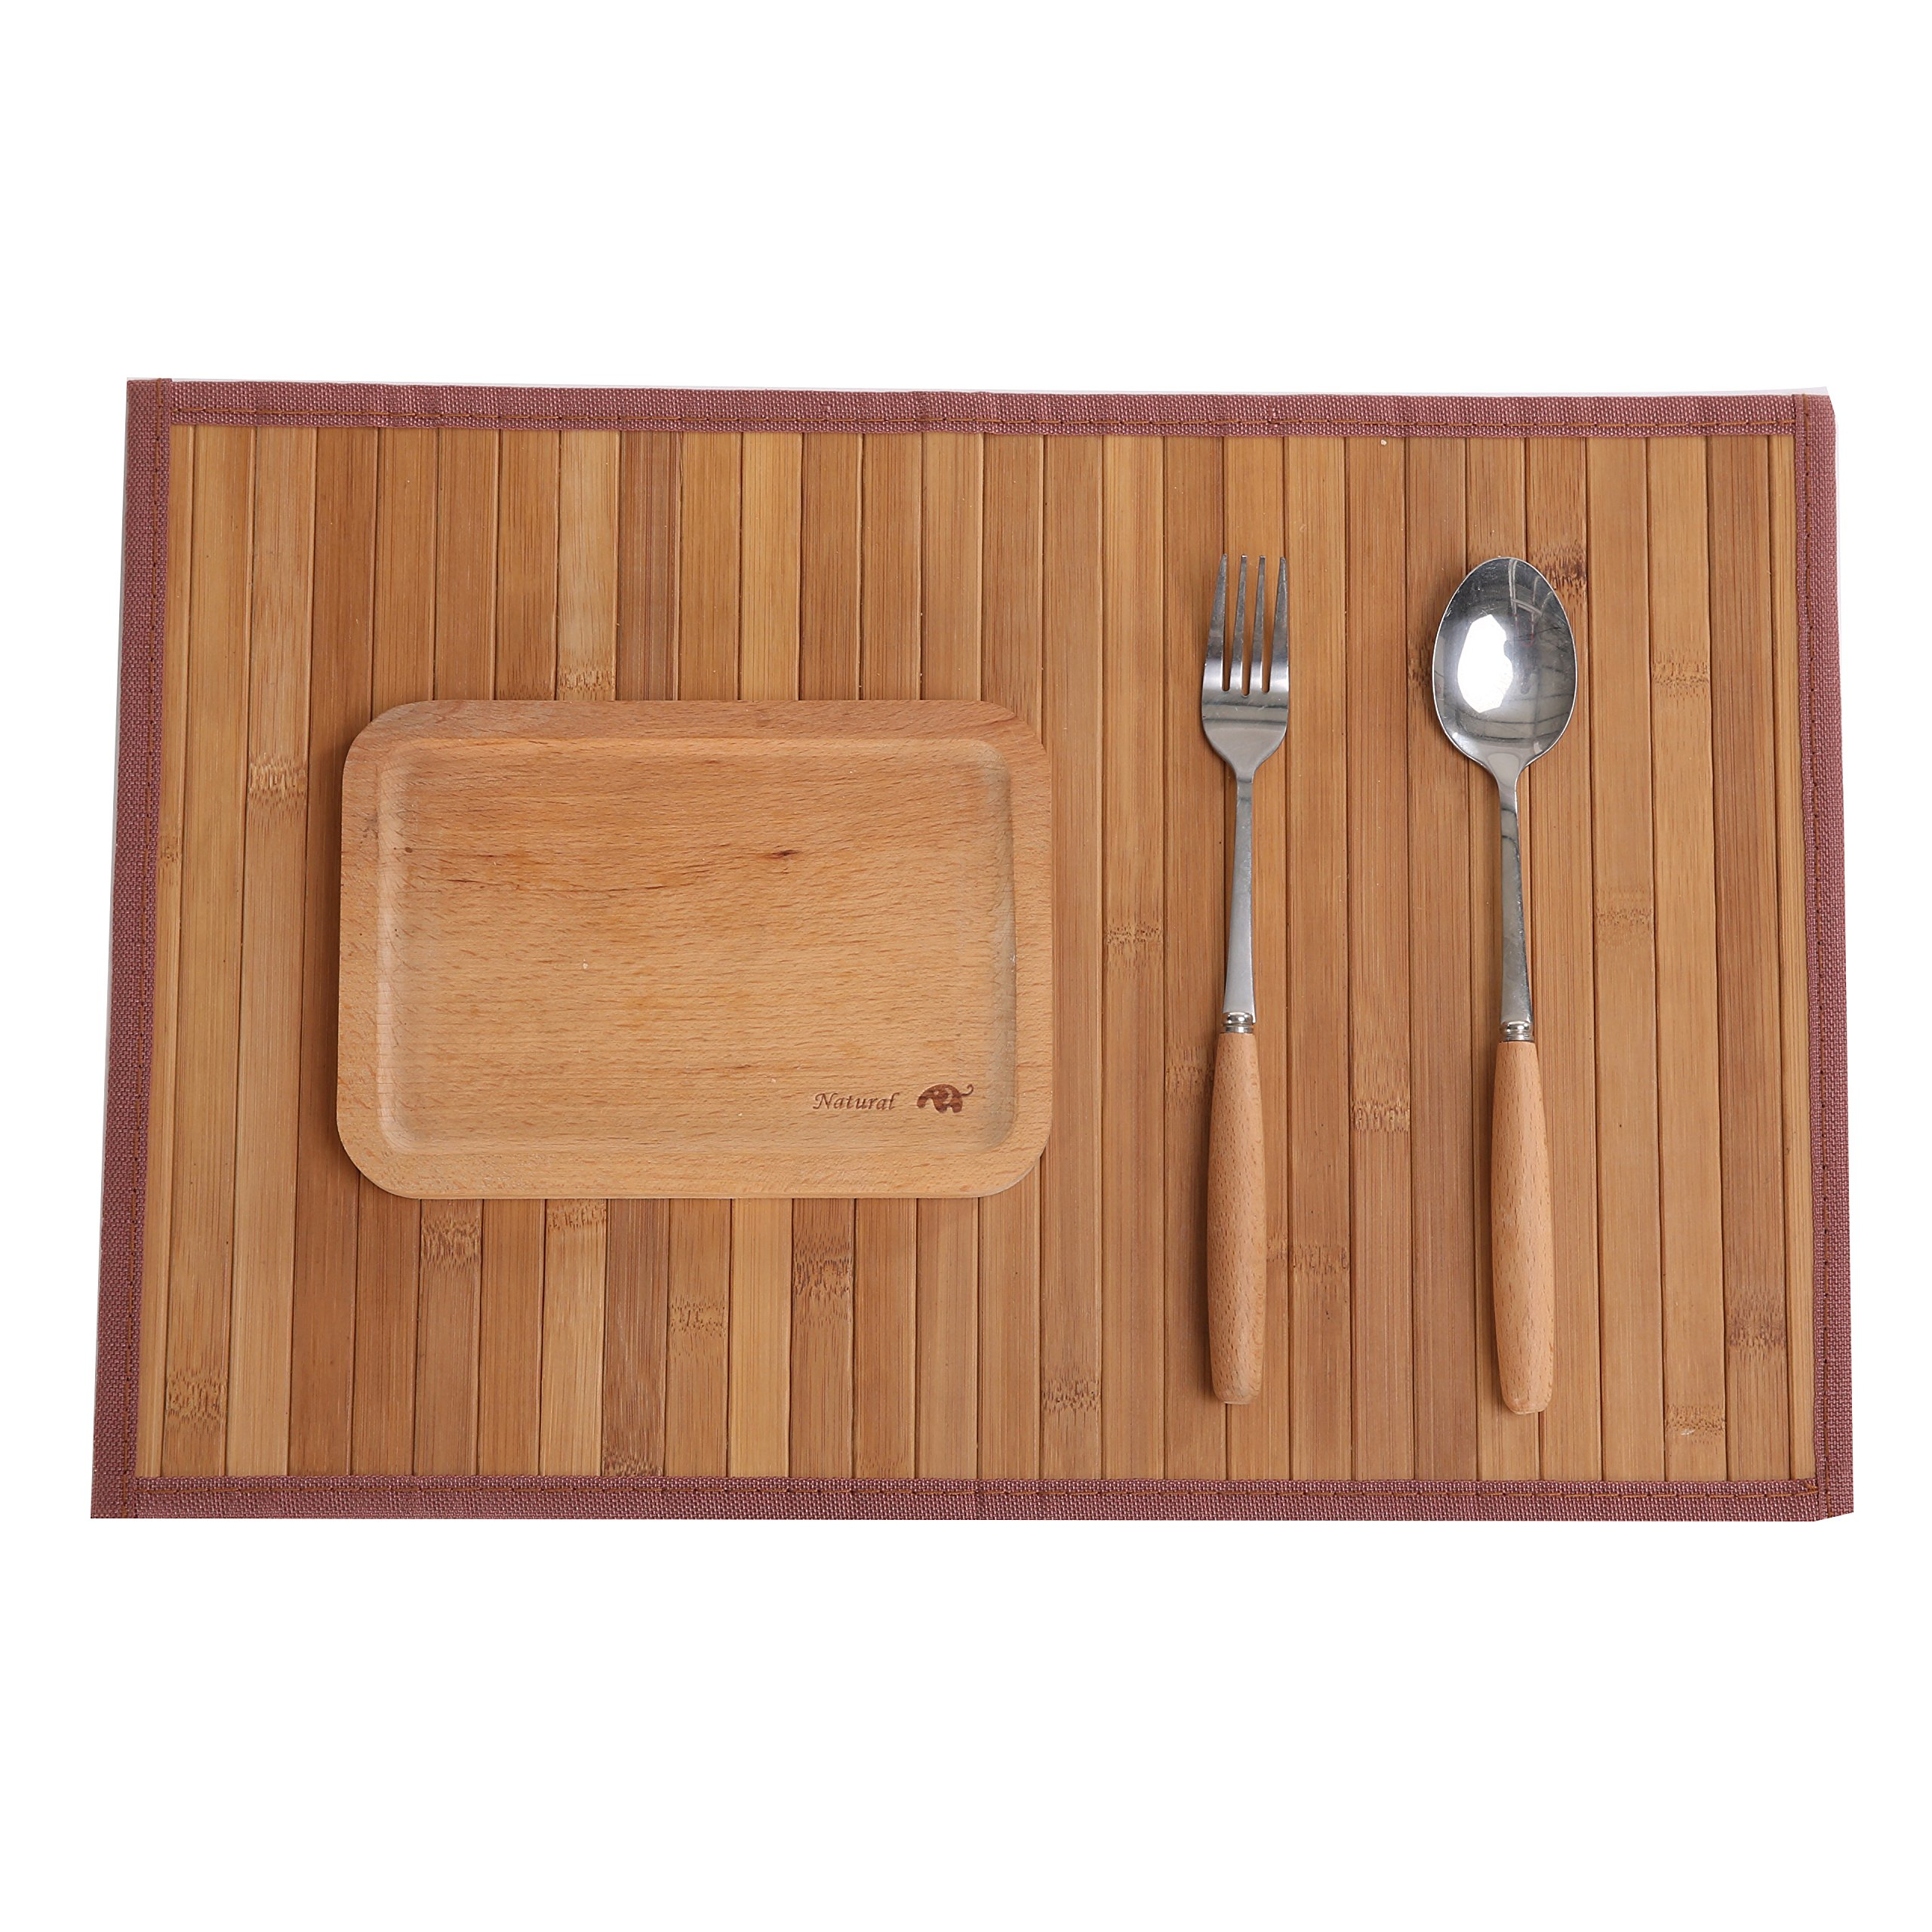 Marscool Placemat for Kitchen Table,Bamboo Placemat Stain-Resistant,Heat-Resistant Placemats Set of 4,Natural Bamboo Material,Table Mats and Dine Mats for Dining Table,Four Model Choices(Original)